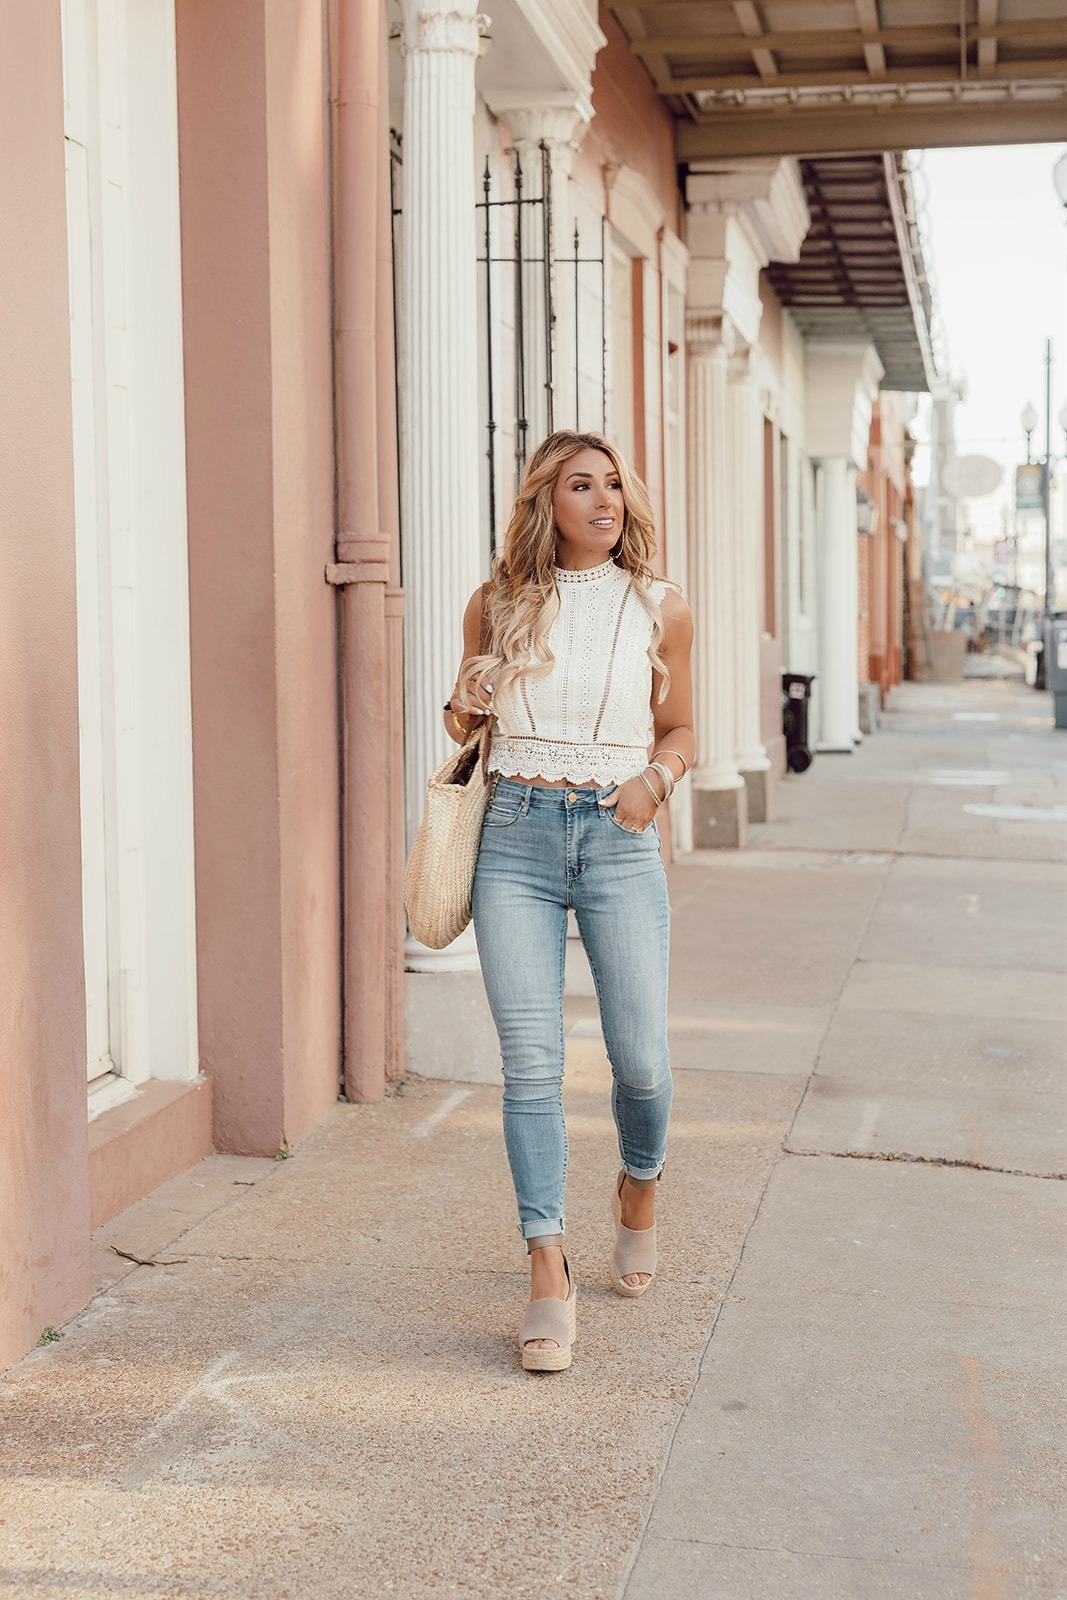 Closet Essentials: My Three Favorite Jeans this Spring